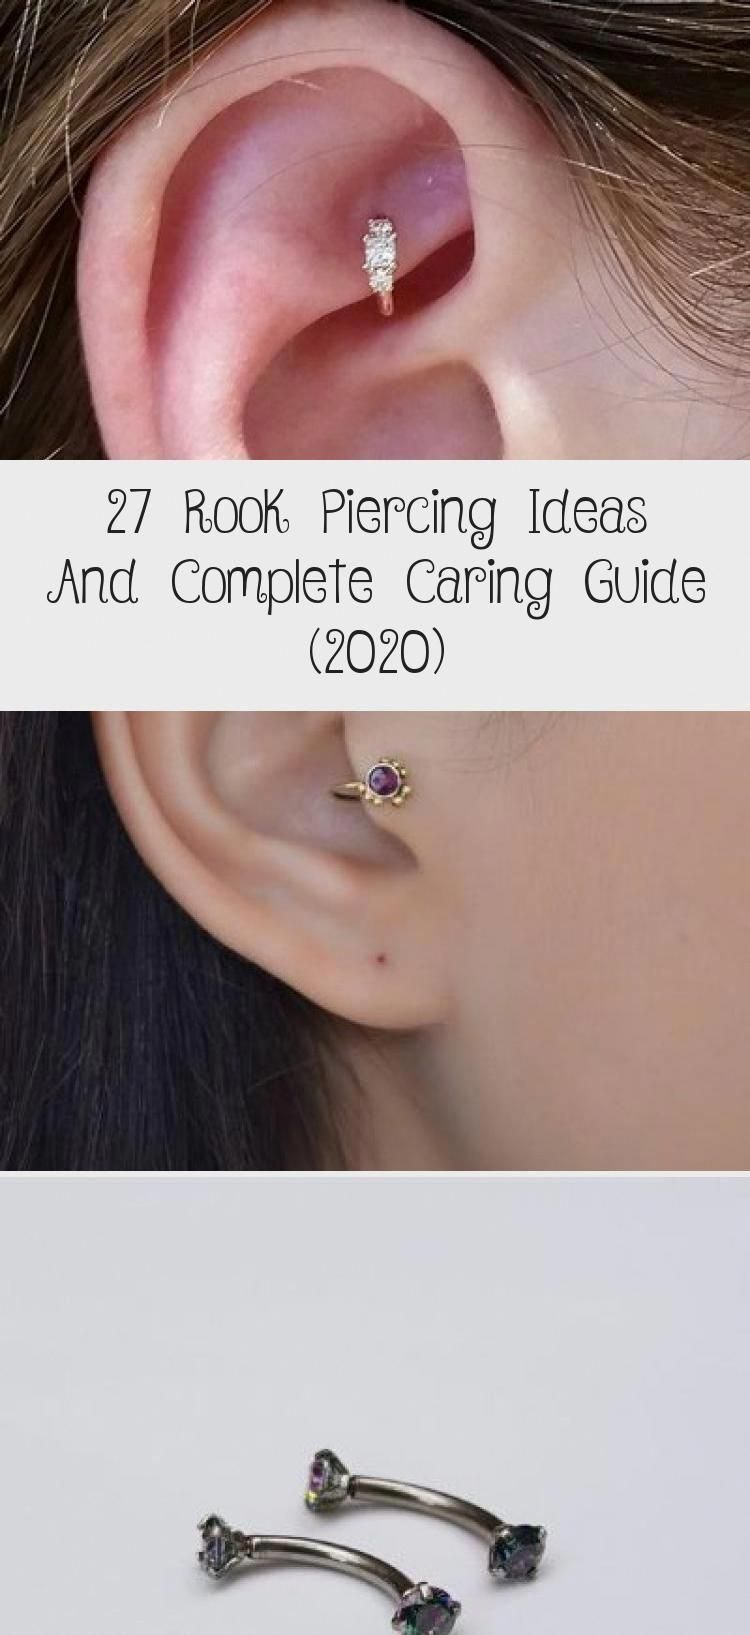 10 different ear piercing names with examples , #@media #Bodymodification #Bodypiercing #Conchpiercing #Earpiercing #Earring #Helixpiercing #Navelpiercing #Rook #Traguspiercing #Hiddenpiercing #piercingNames #piercingOreille #piercingMouth #piercingOrbital #earpiercingnames #earpiercingsnames